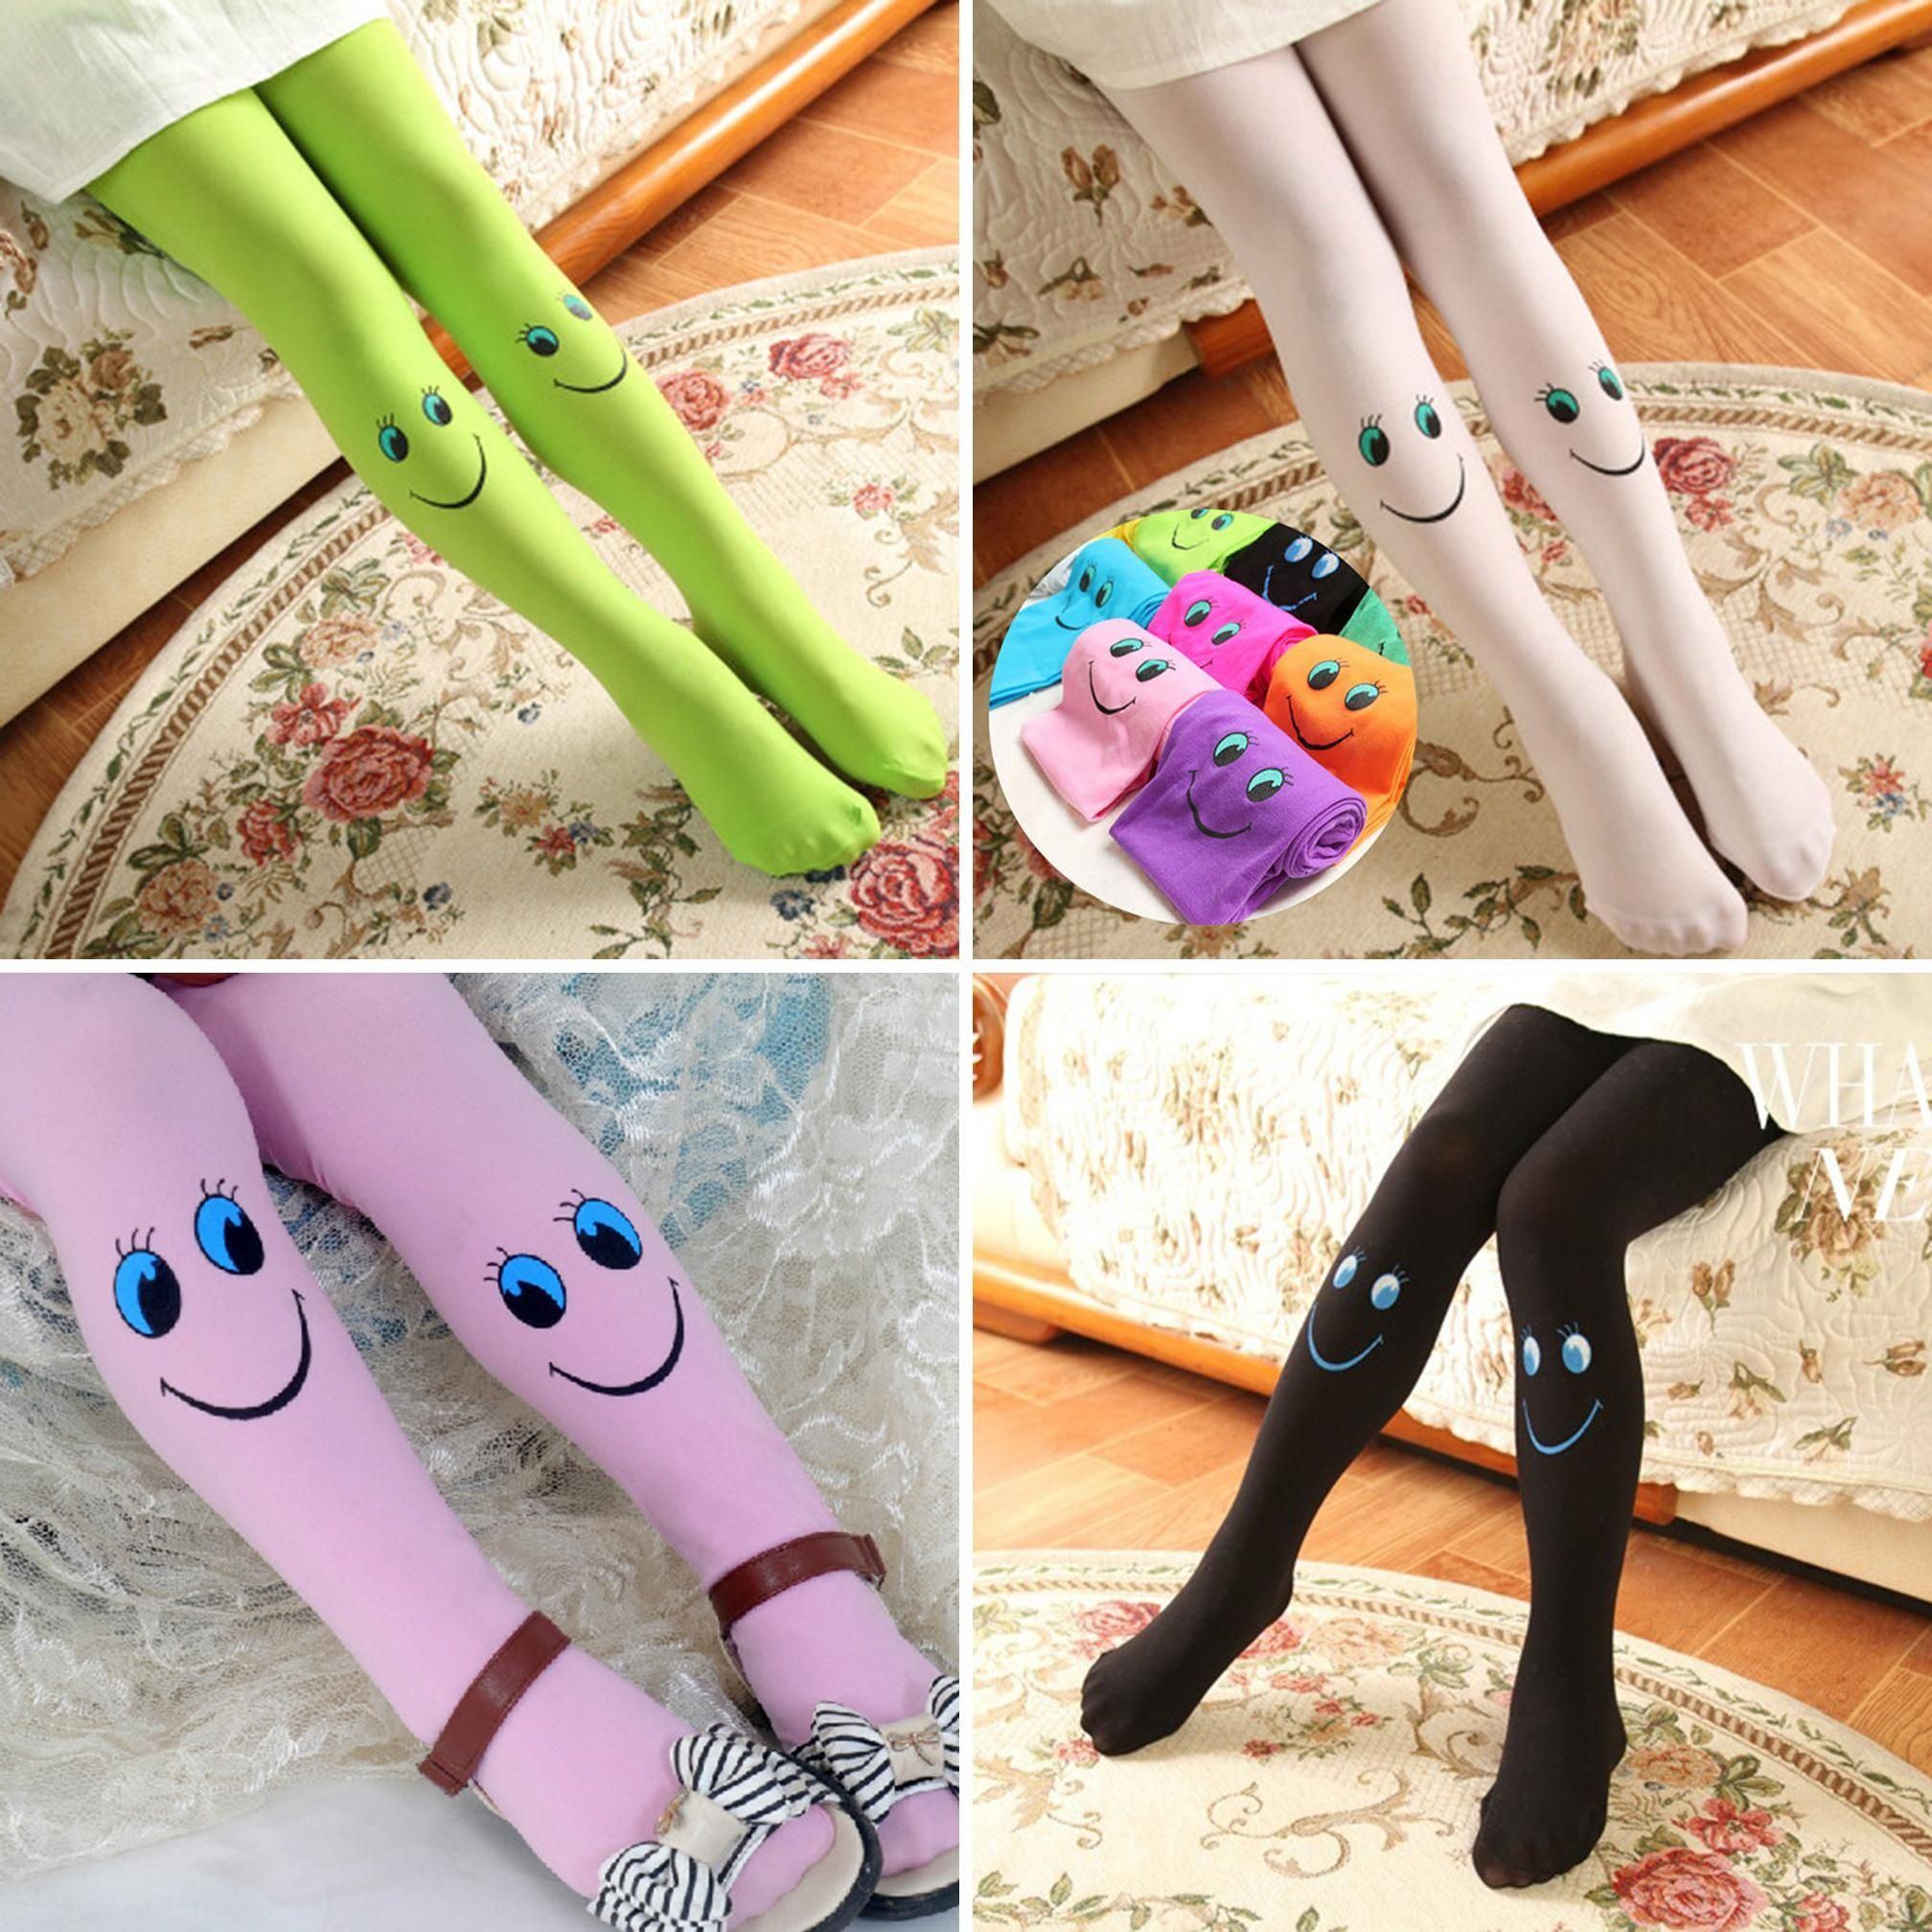 2017 New Fashion Winter Baby Girls Cute Smile Tights Dancing Pantyhose Child Christmas Stockings Socks